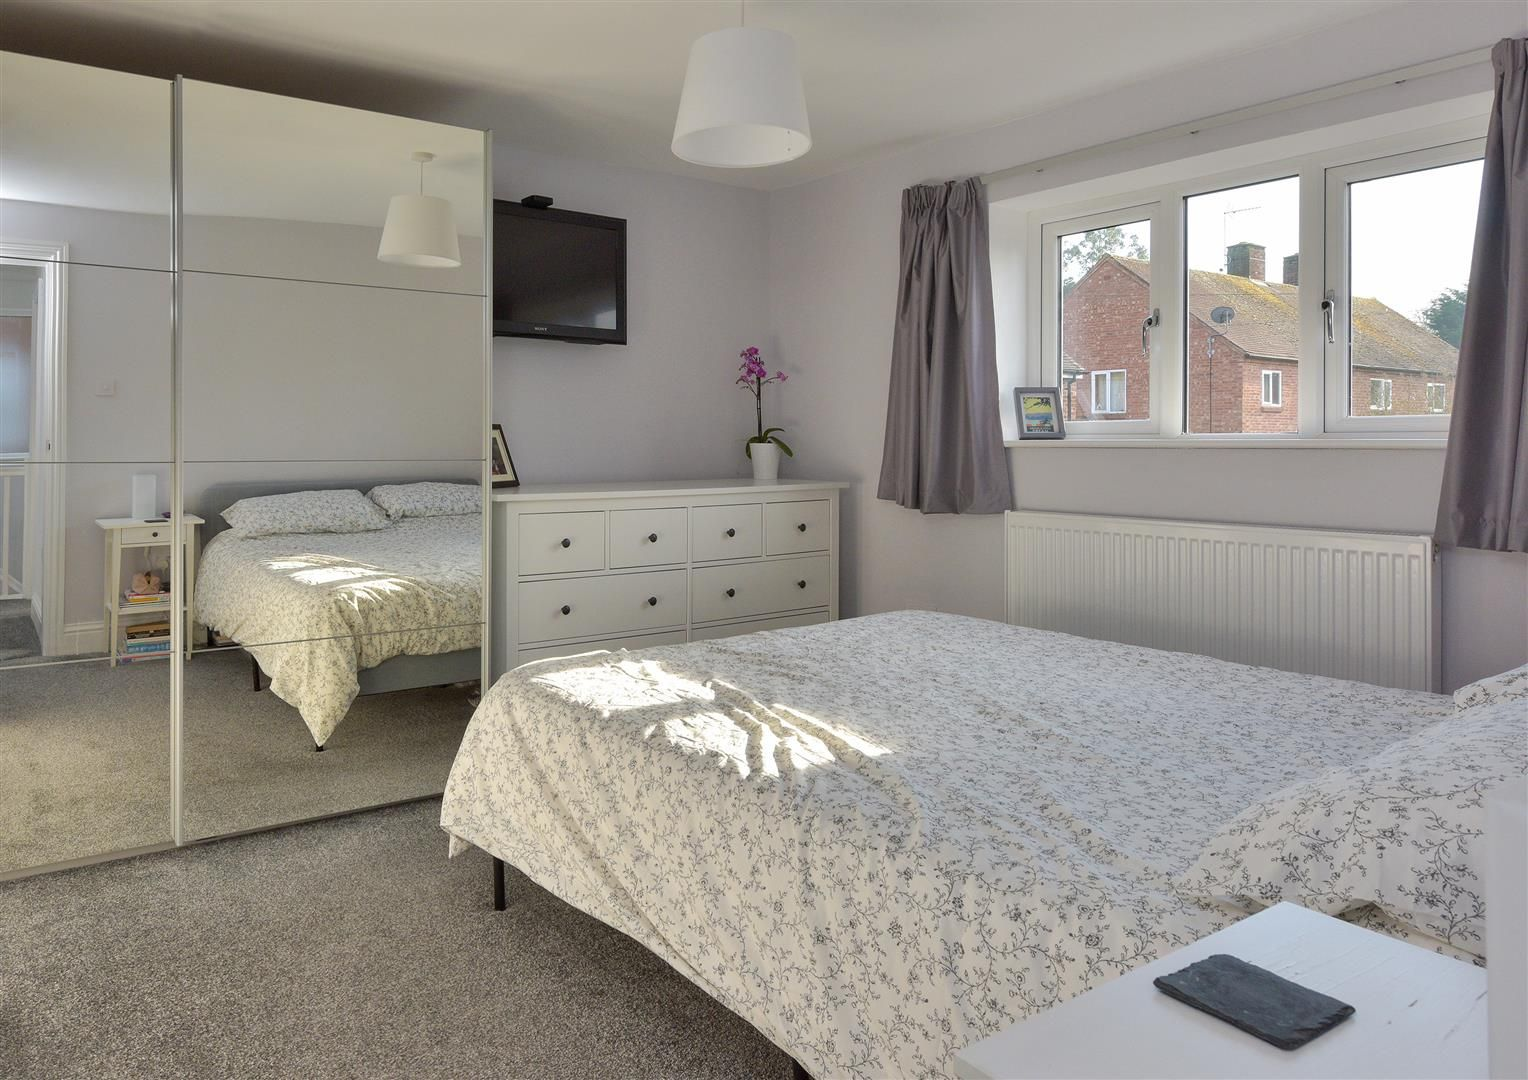 3 bed house for sale in Clent 14